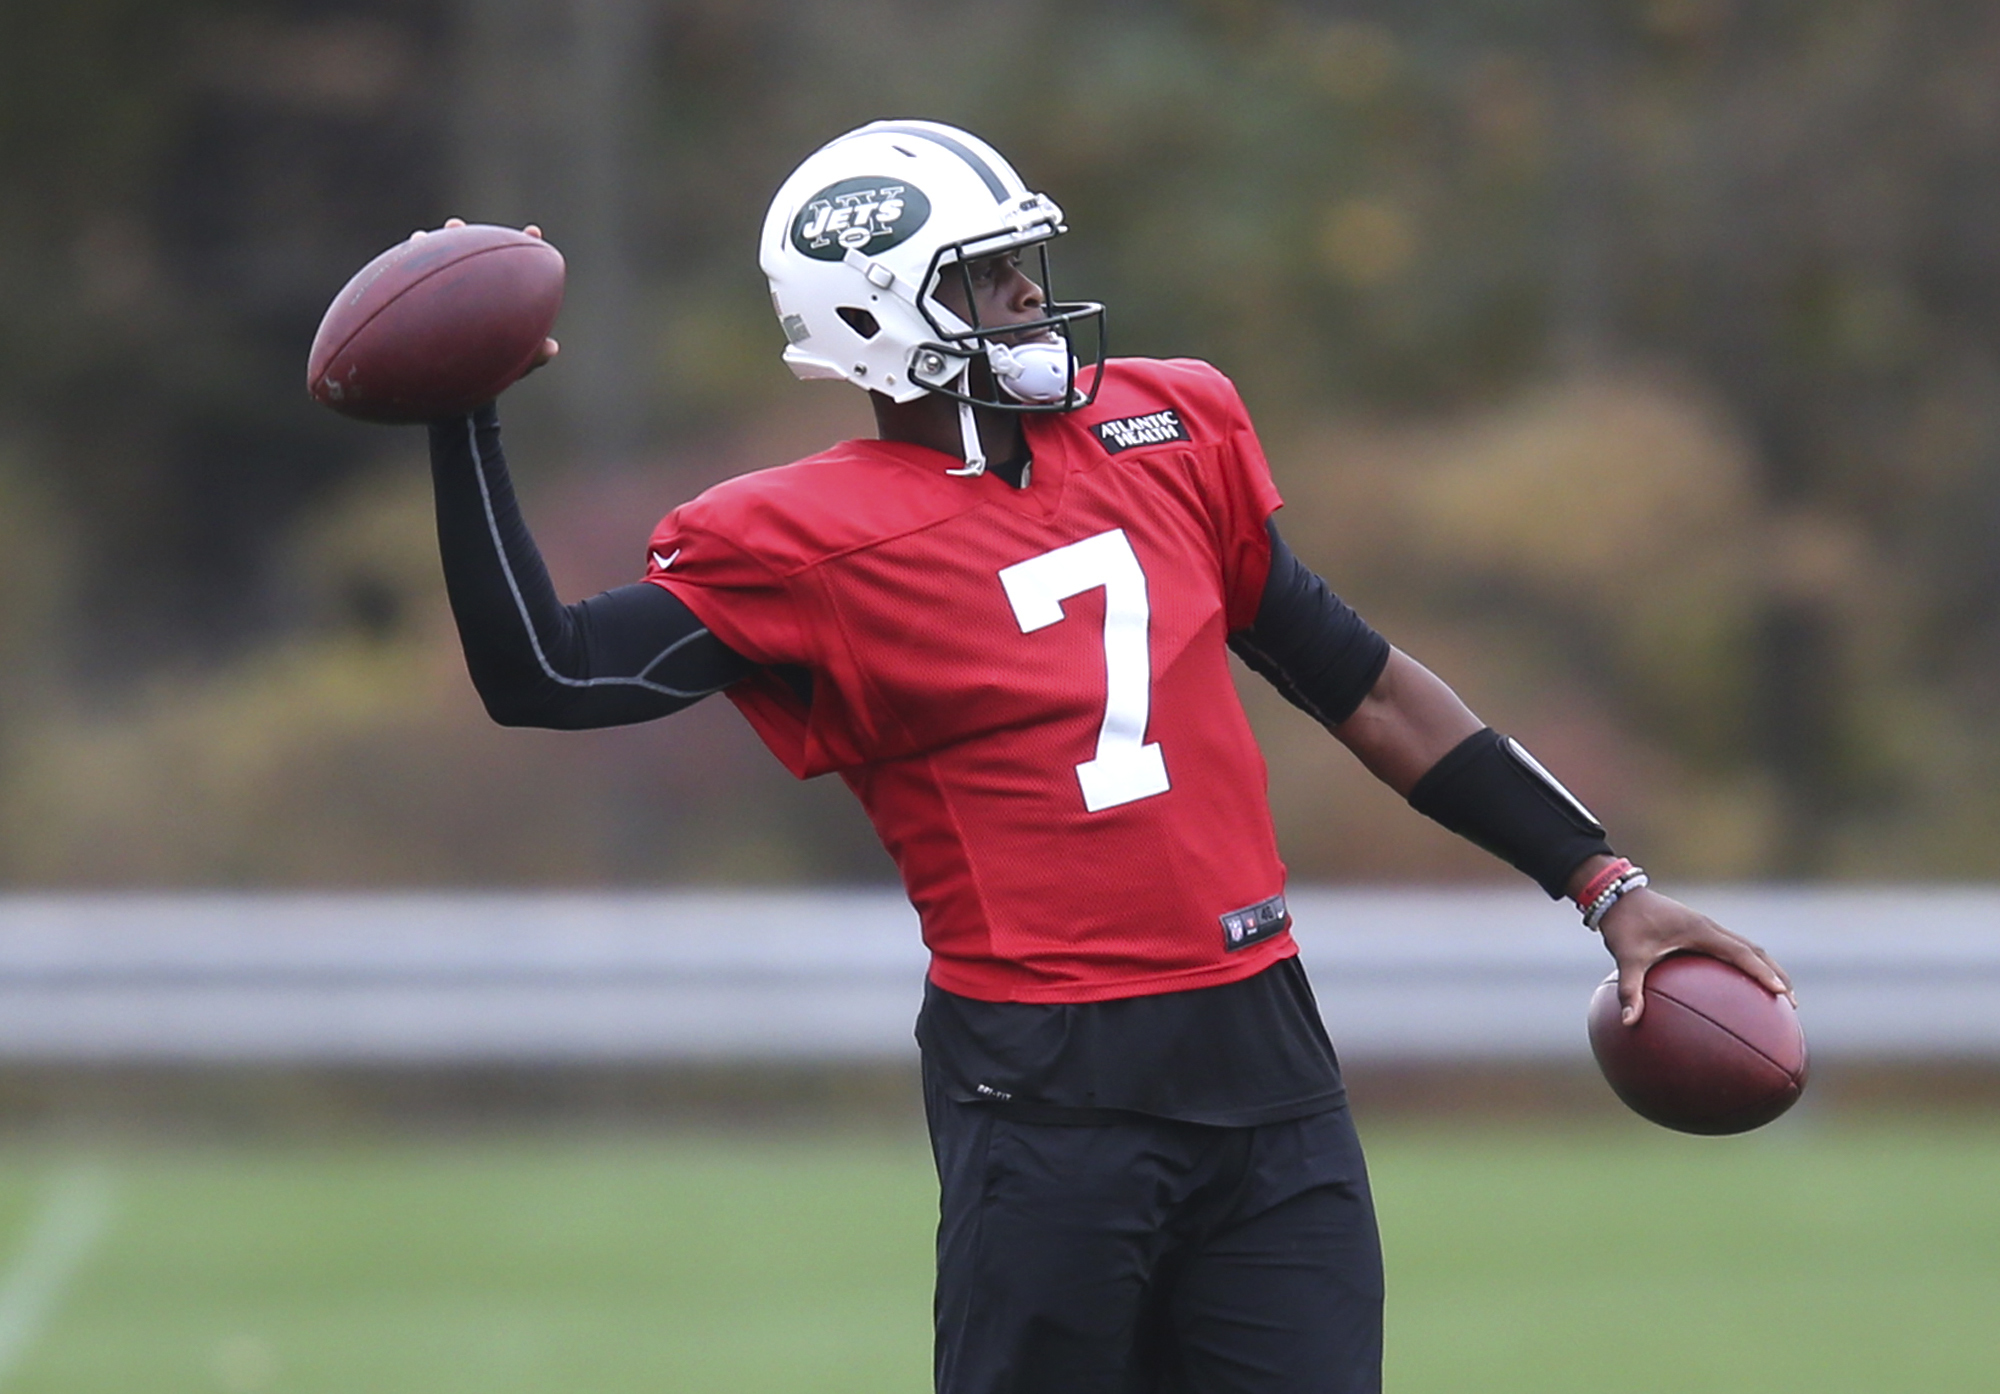 New York Jets quarterback Geno Smith throws a pass during a NFL football practice in Florham Park, N.J., Thursday, Oct. 20, 2016. Chan Gailey was Todd Bowles' hand-picked offensive coordinator when he was hired as Jets coach last year. After a terrific 20